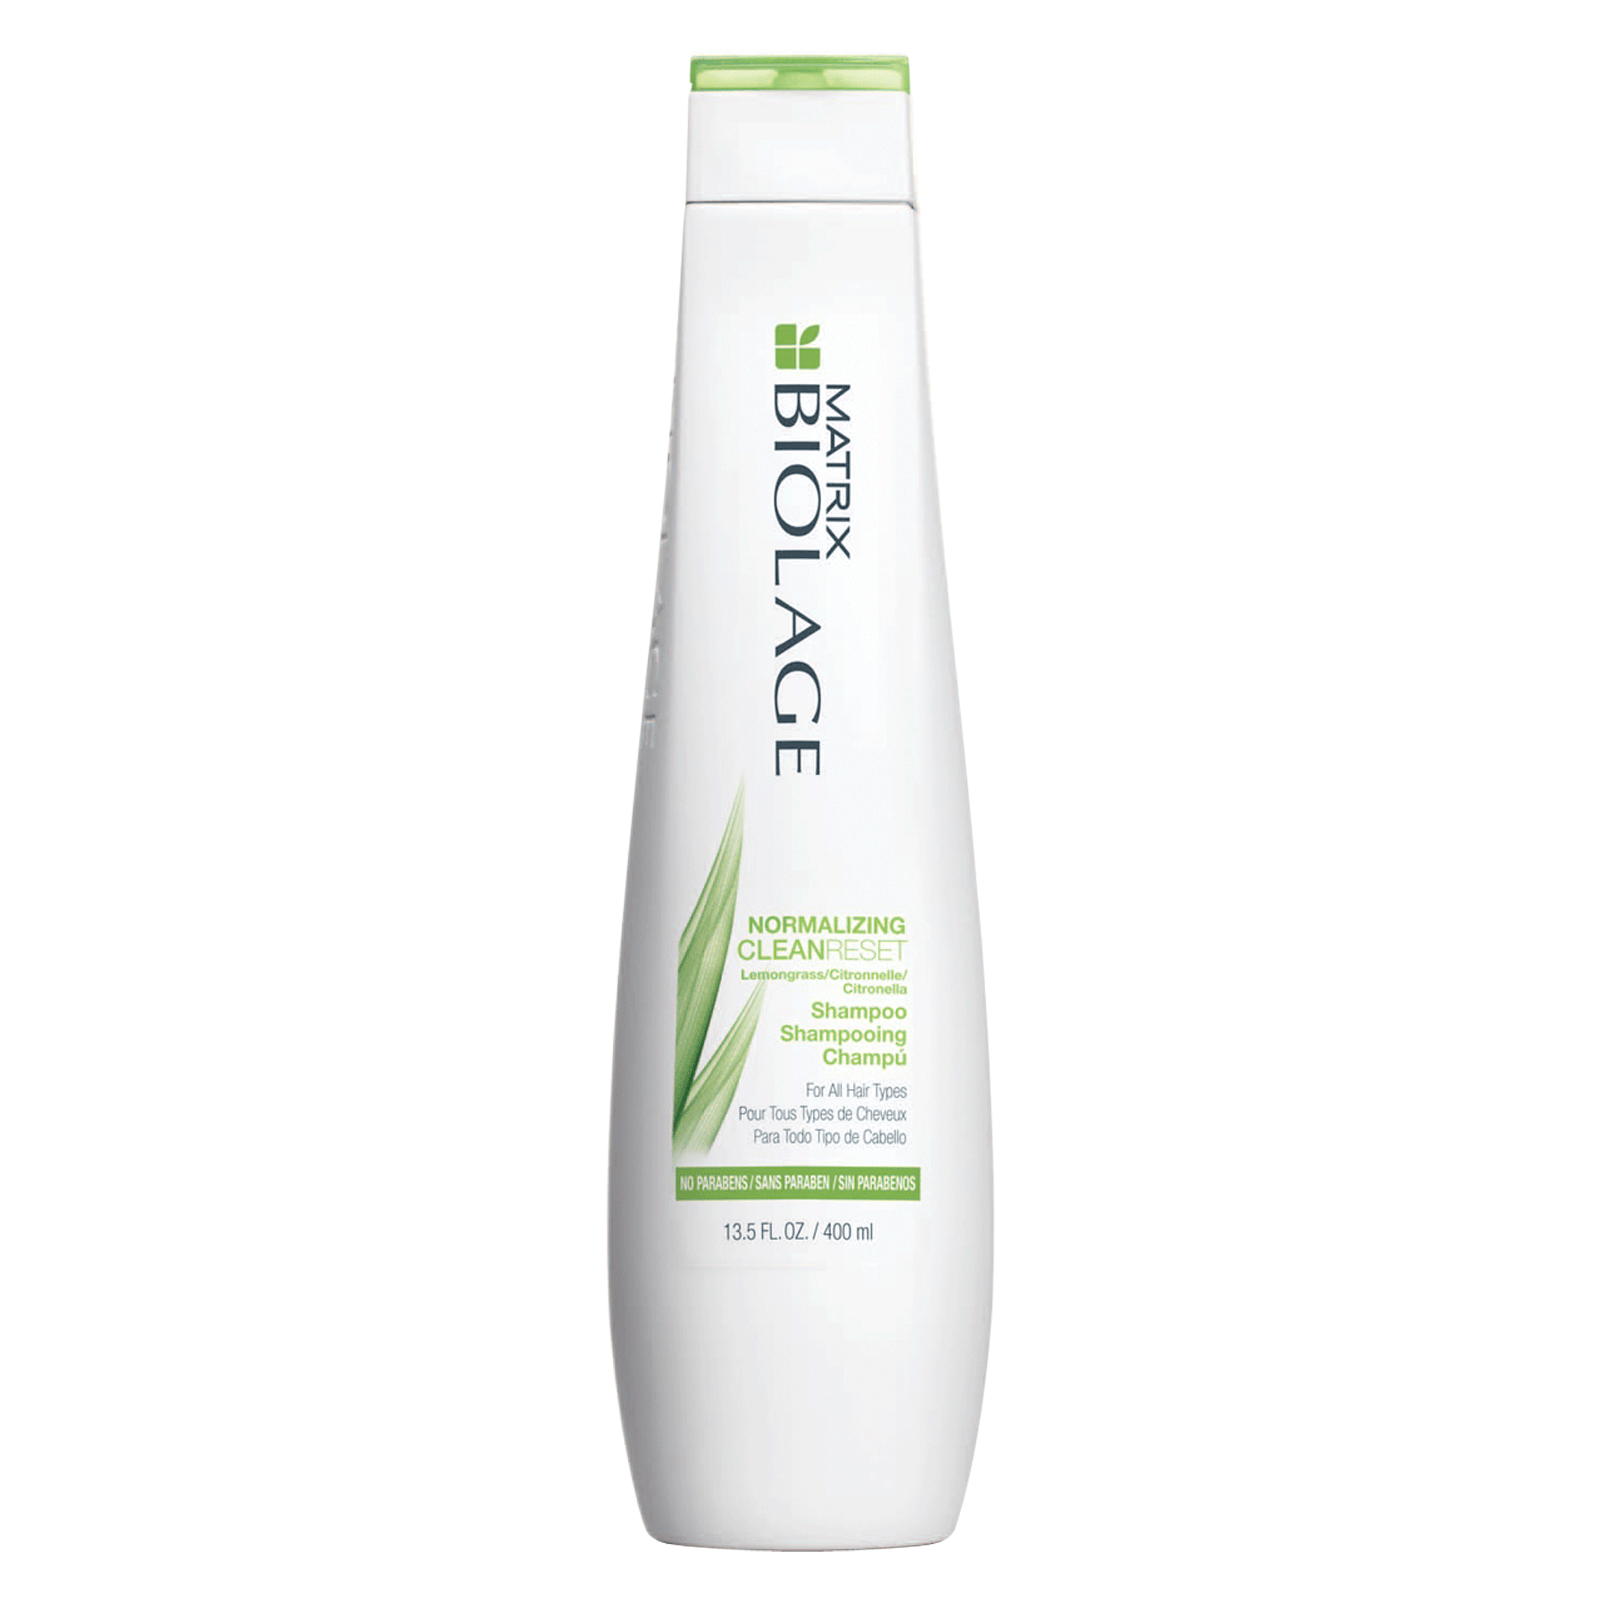 Clean Reset Normalizing Shampoo